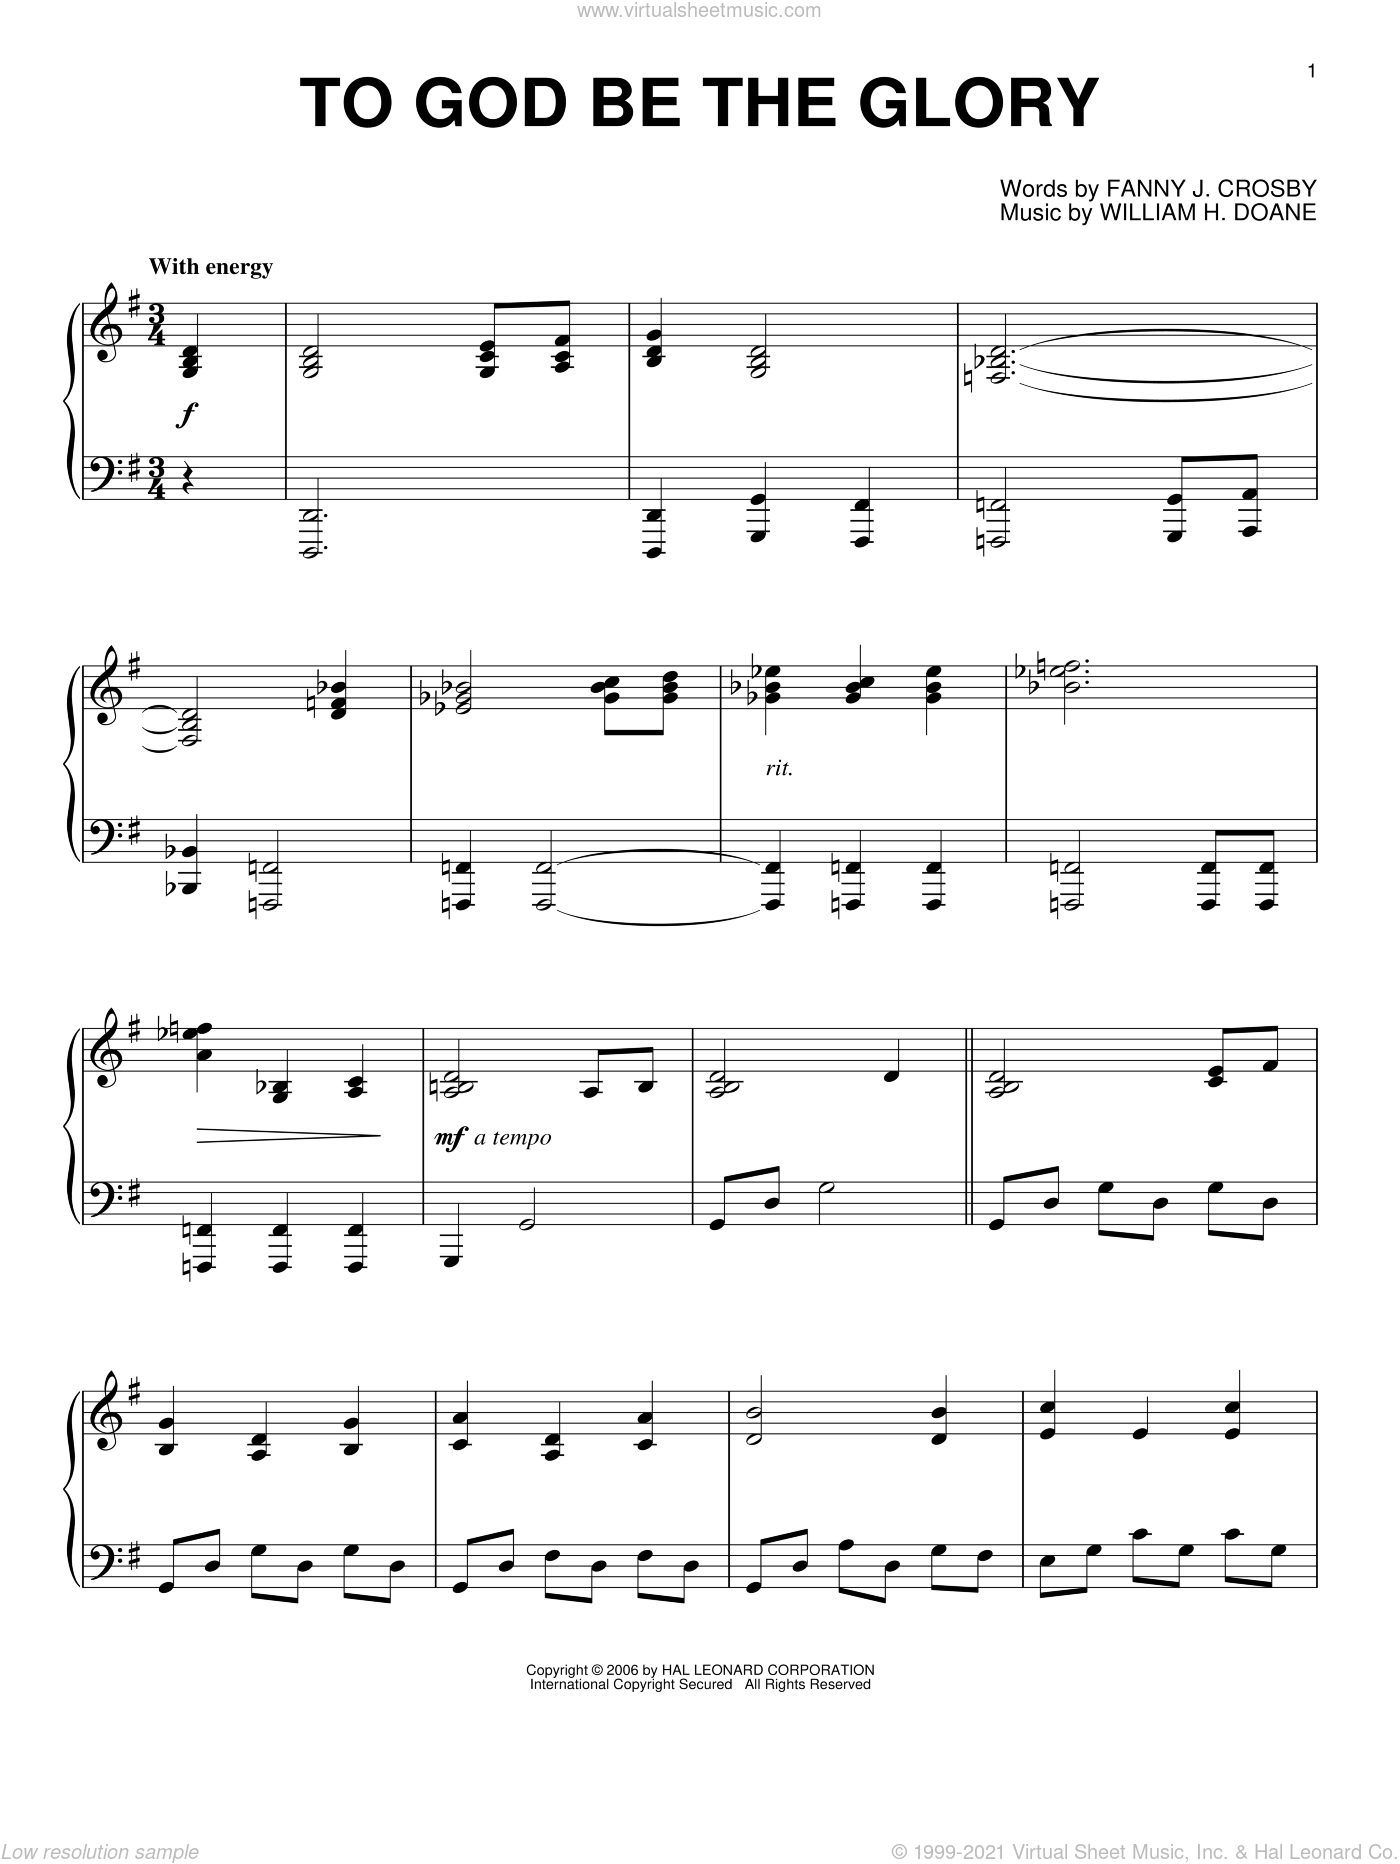 To God Be The Glory sheet music for piano solo by Fanny J. Crosby and William H. Doane, intermediate skill level